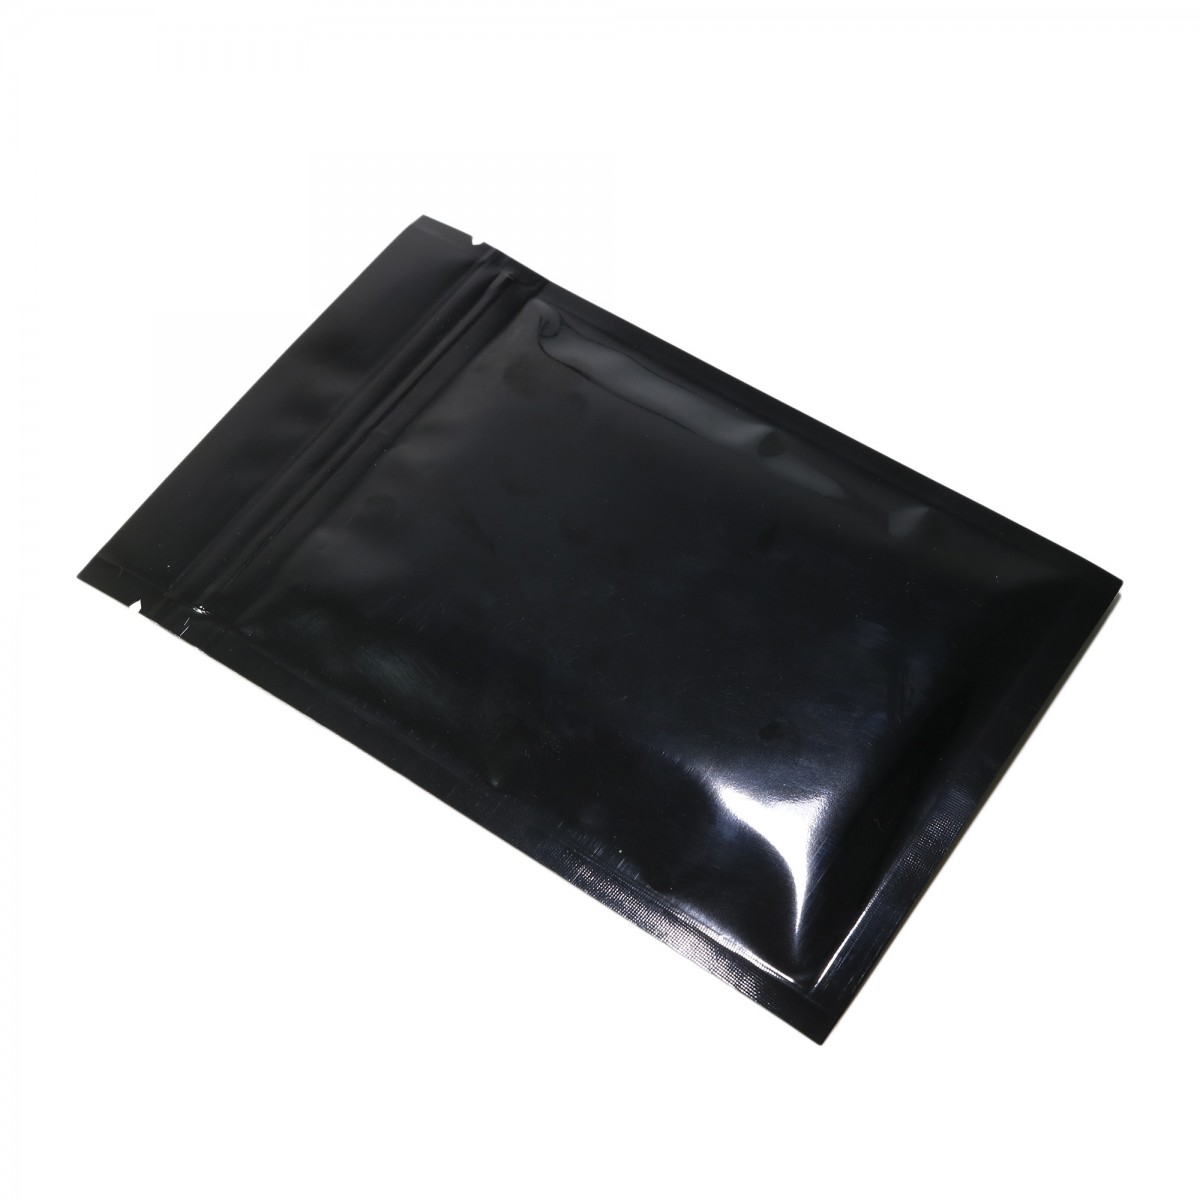 black shiny metallic mylar ziplock bags 8 5 cm x 13 cm 3 3 inches x 5 1 inches 500 bags lot. Black Bedroom Furniture Sets. Home Design Ideas